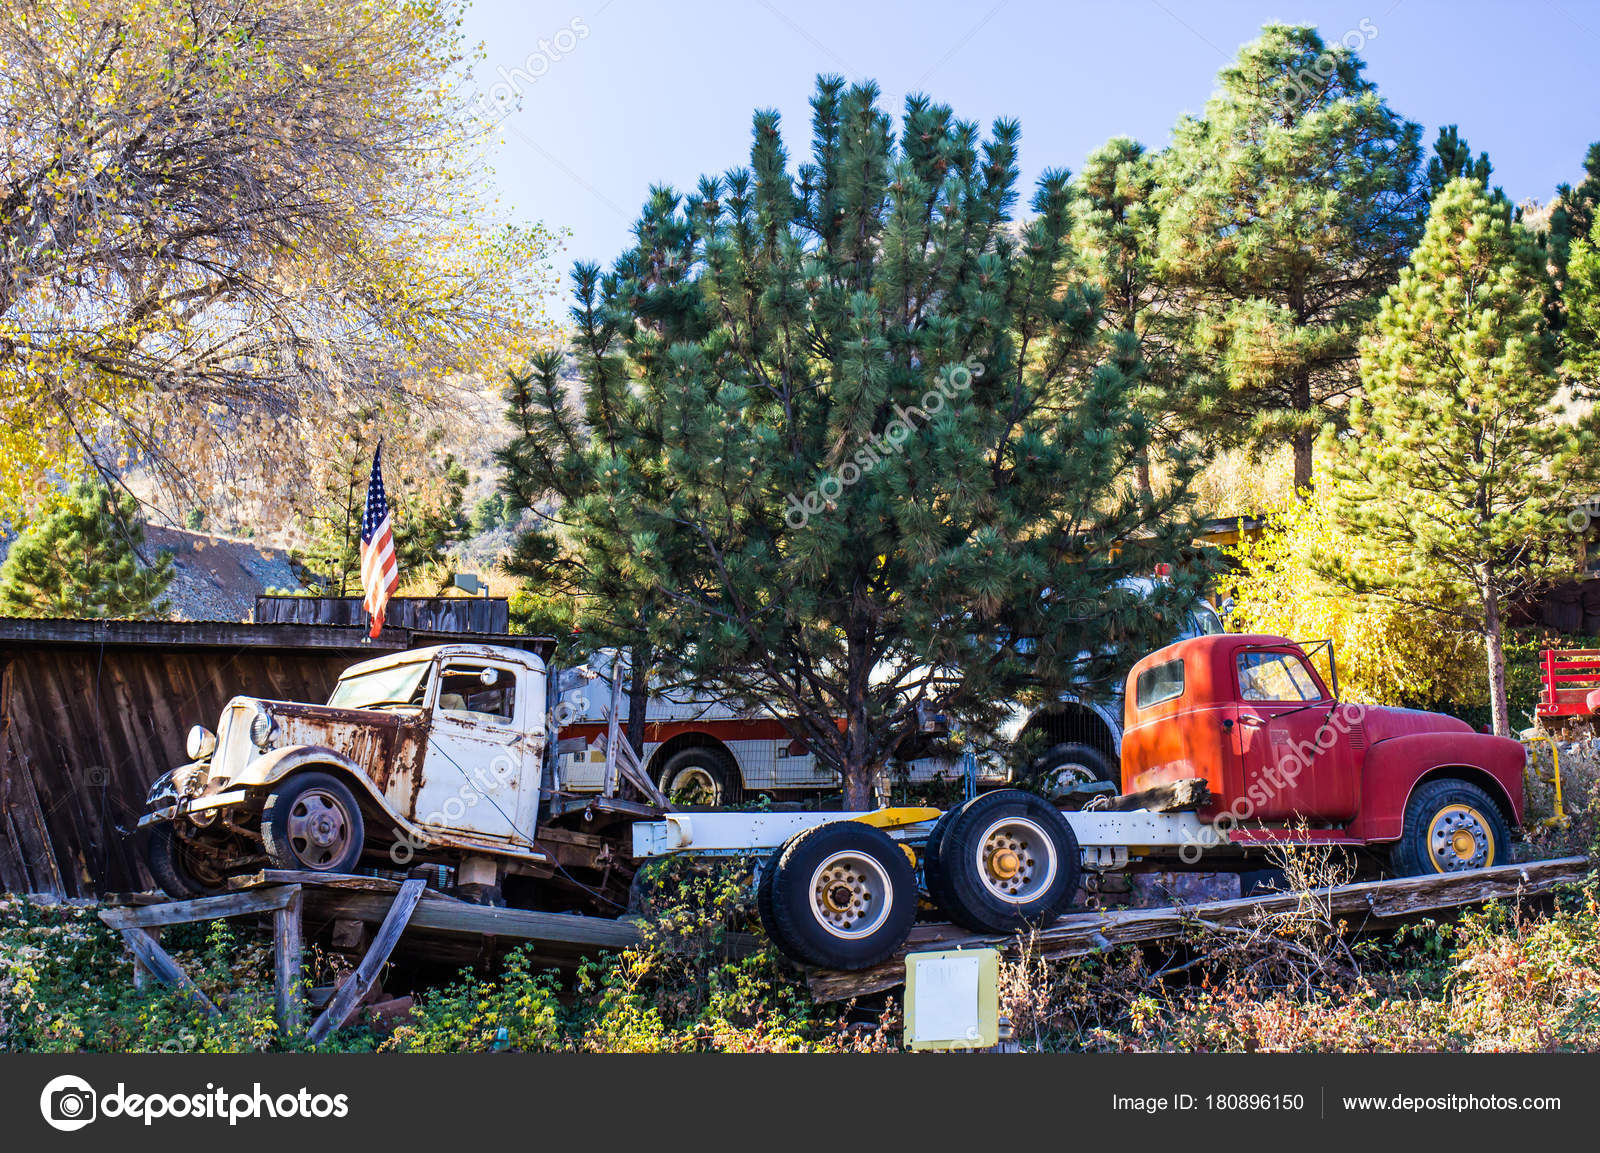 Two Vintage Trucks In Salvage Yard — Stock Photo © weezybob5 #180896150